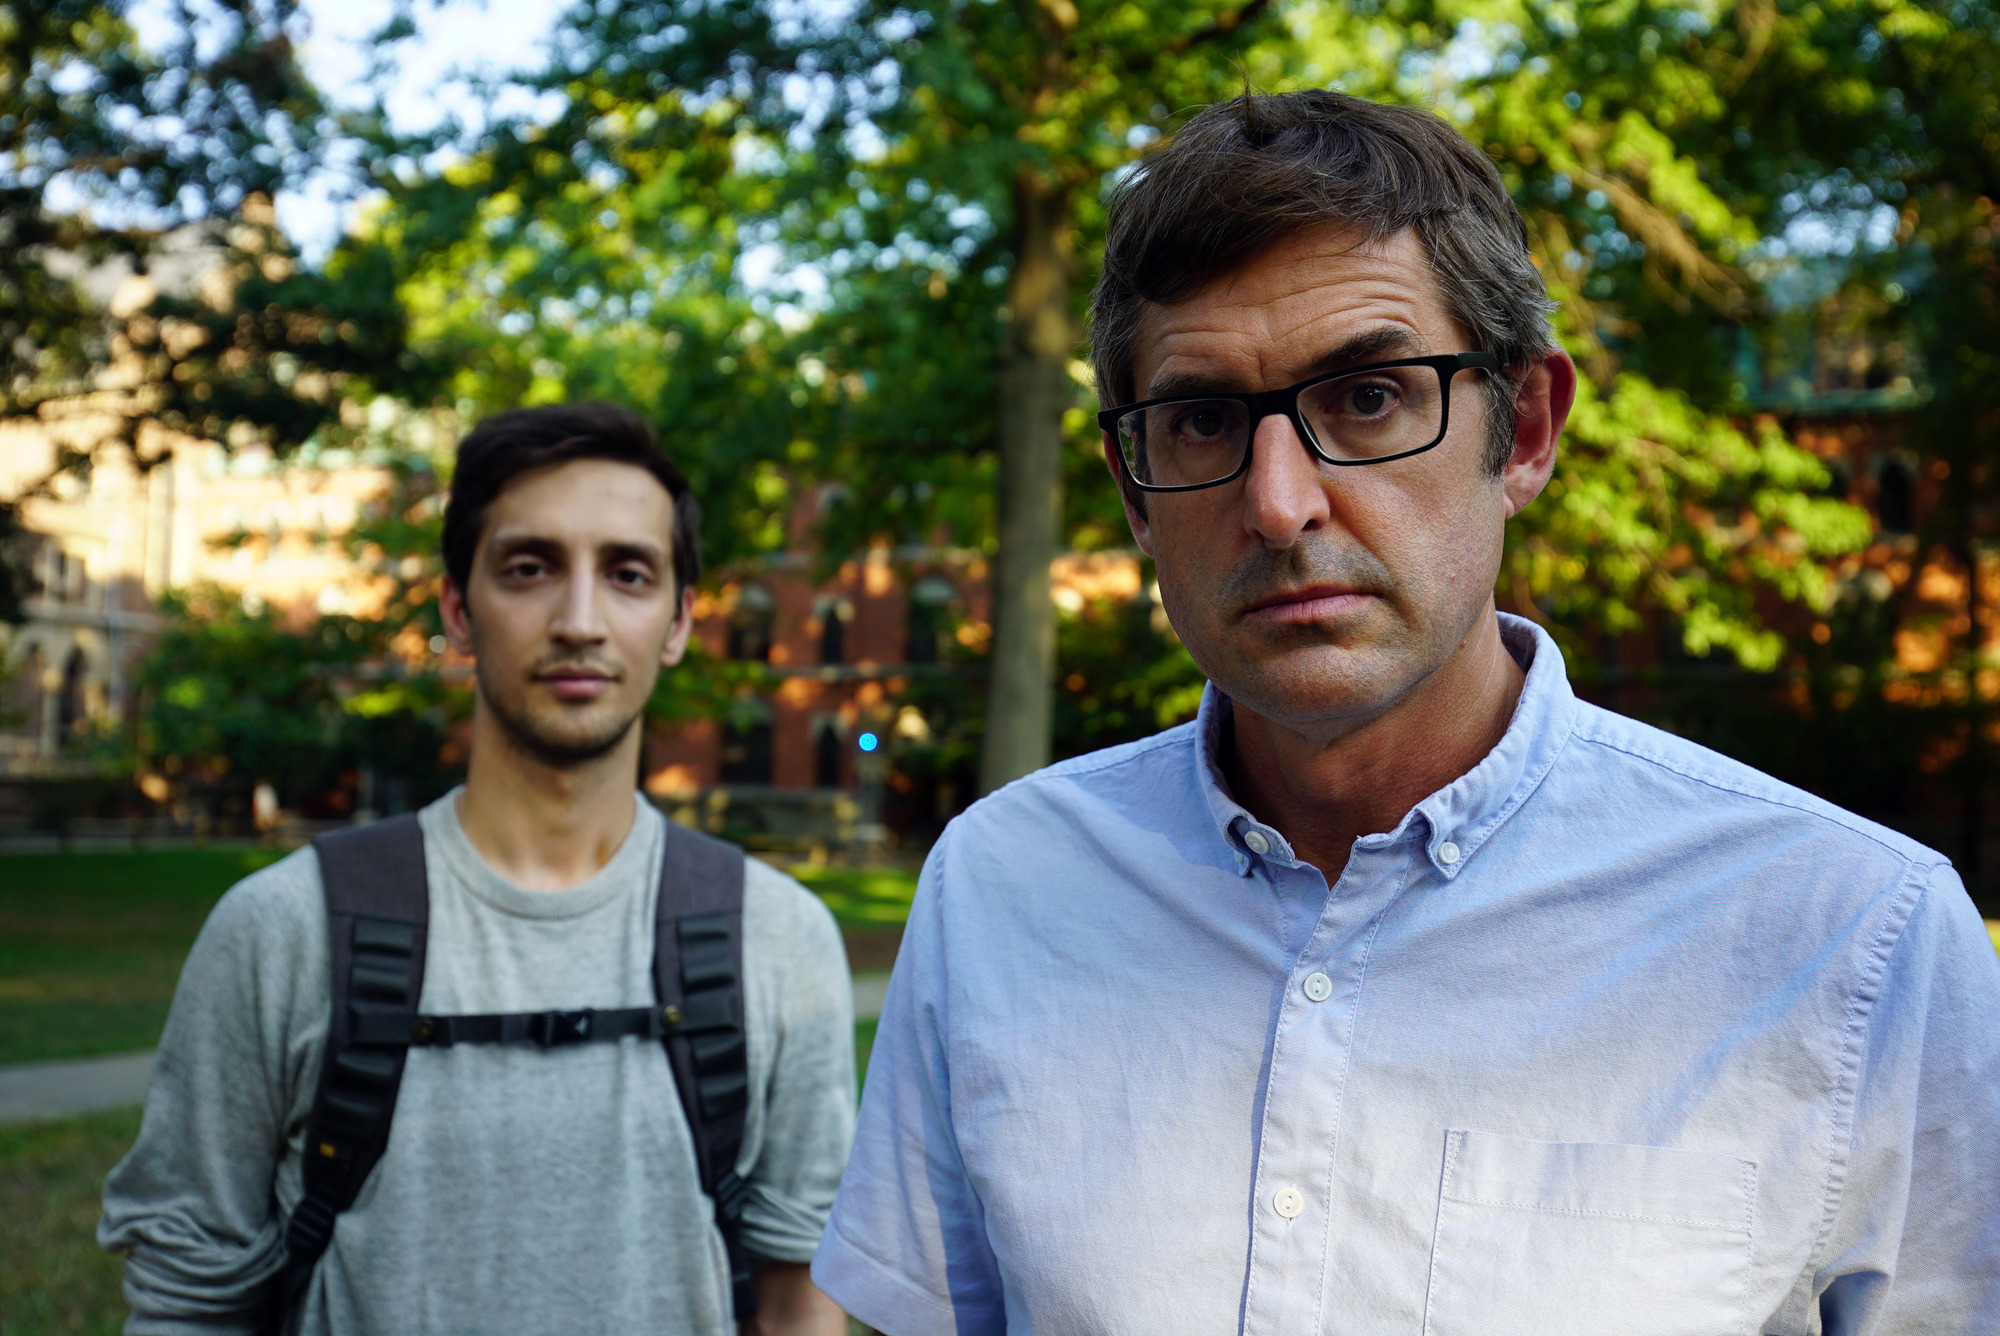 Louis Theroux's The Night In Question reminded me my feelings towards my abusers aren't black and white